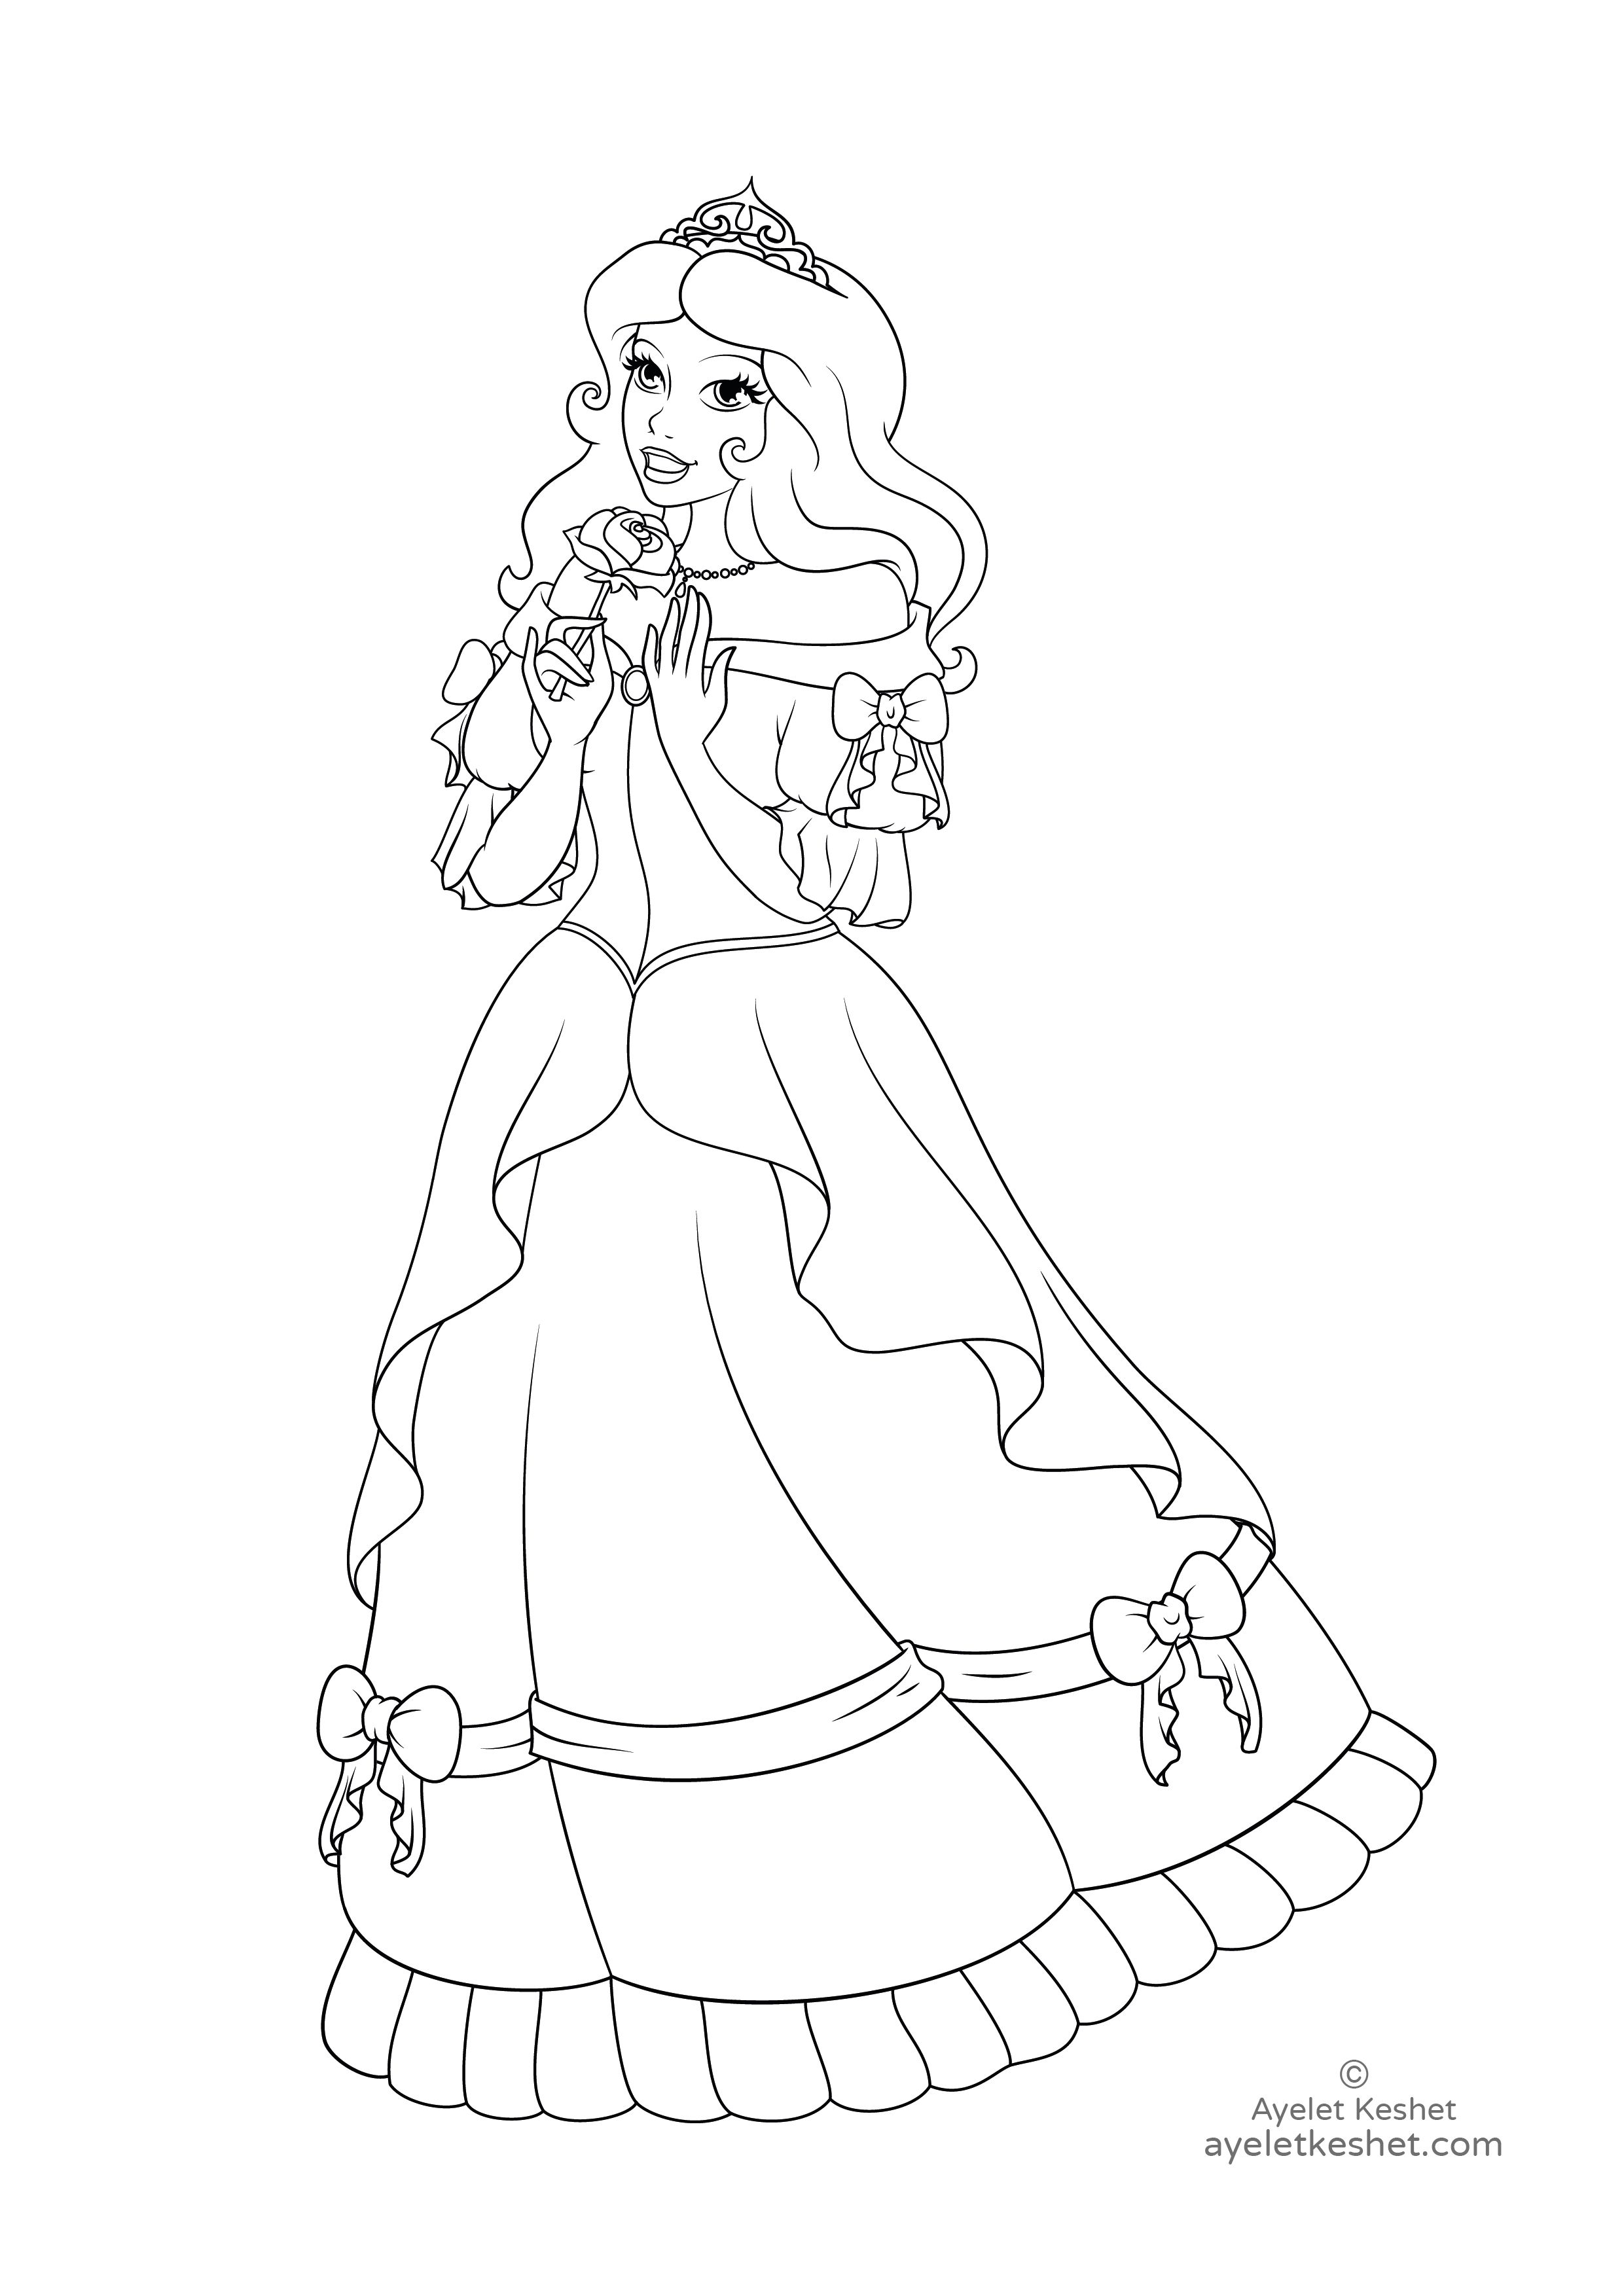 Coloring Pages About Fairy Tales For Kids Ayelet Keshet Disney Princess Coloring Pages Toy Story Coloring Pages Barbie Coloring Pages